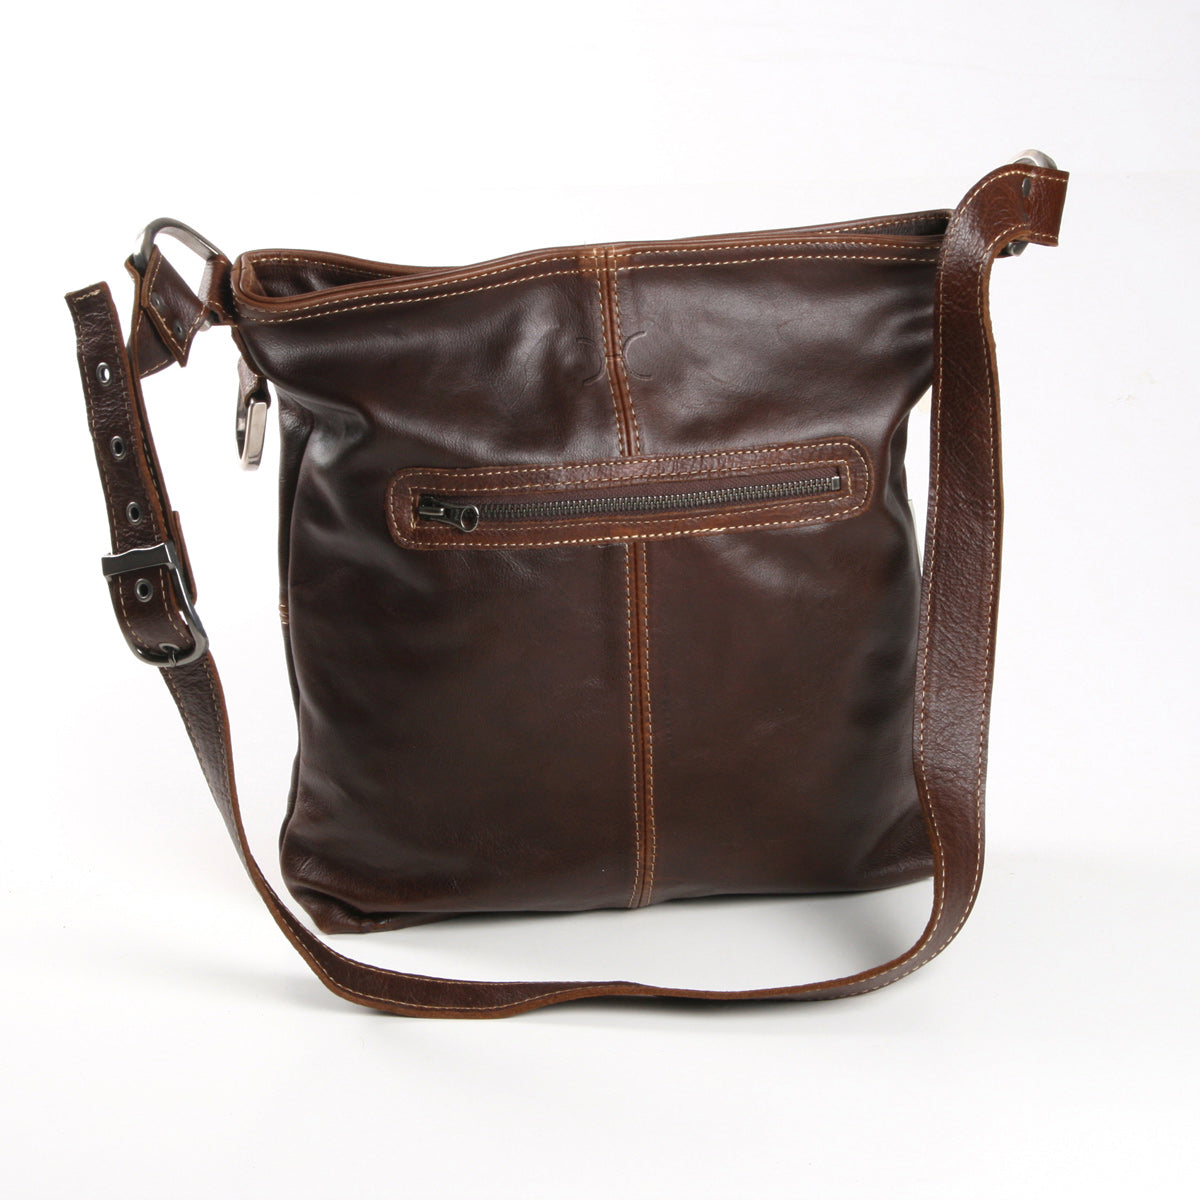 Thandana Messenger Sling Bag - Brown - Zufrique Boutique